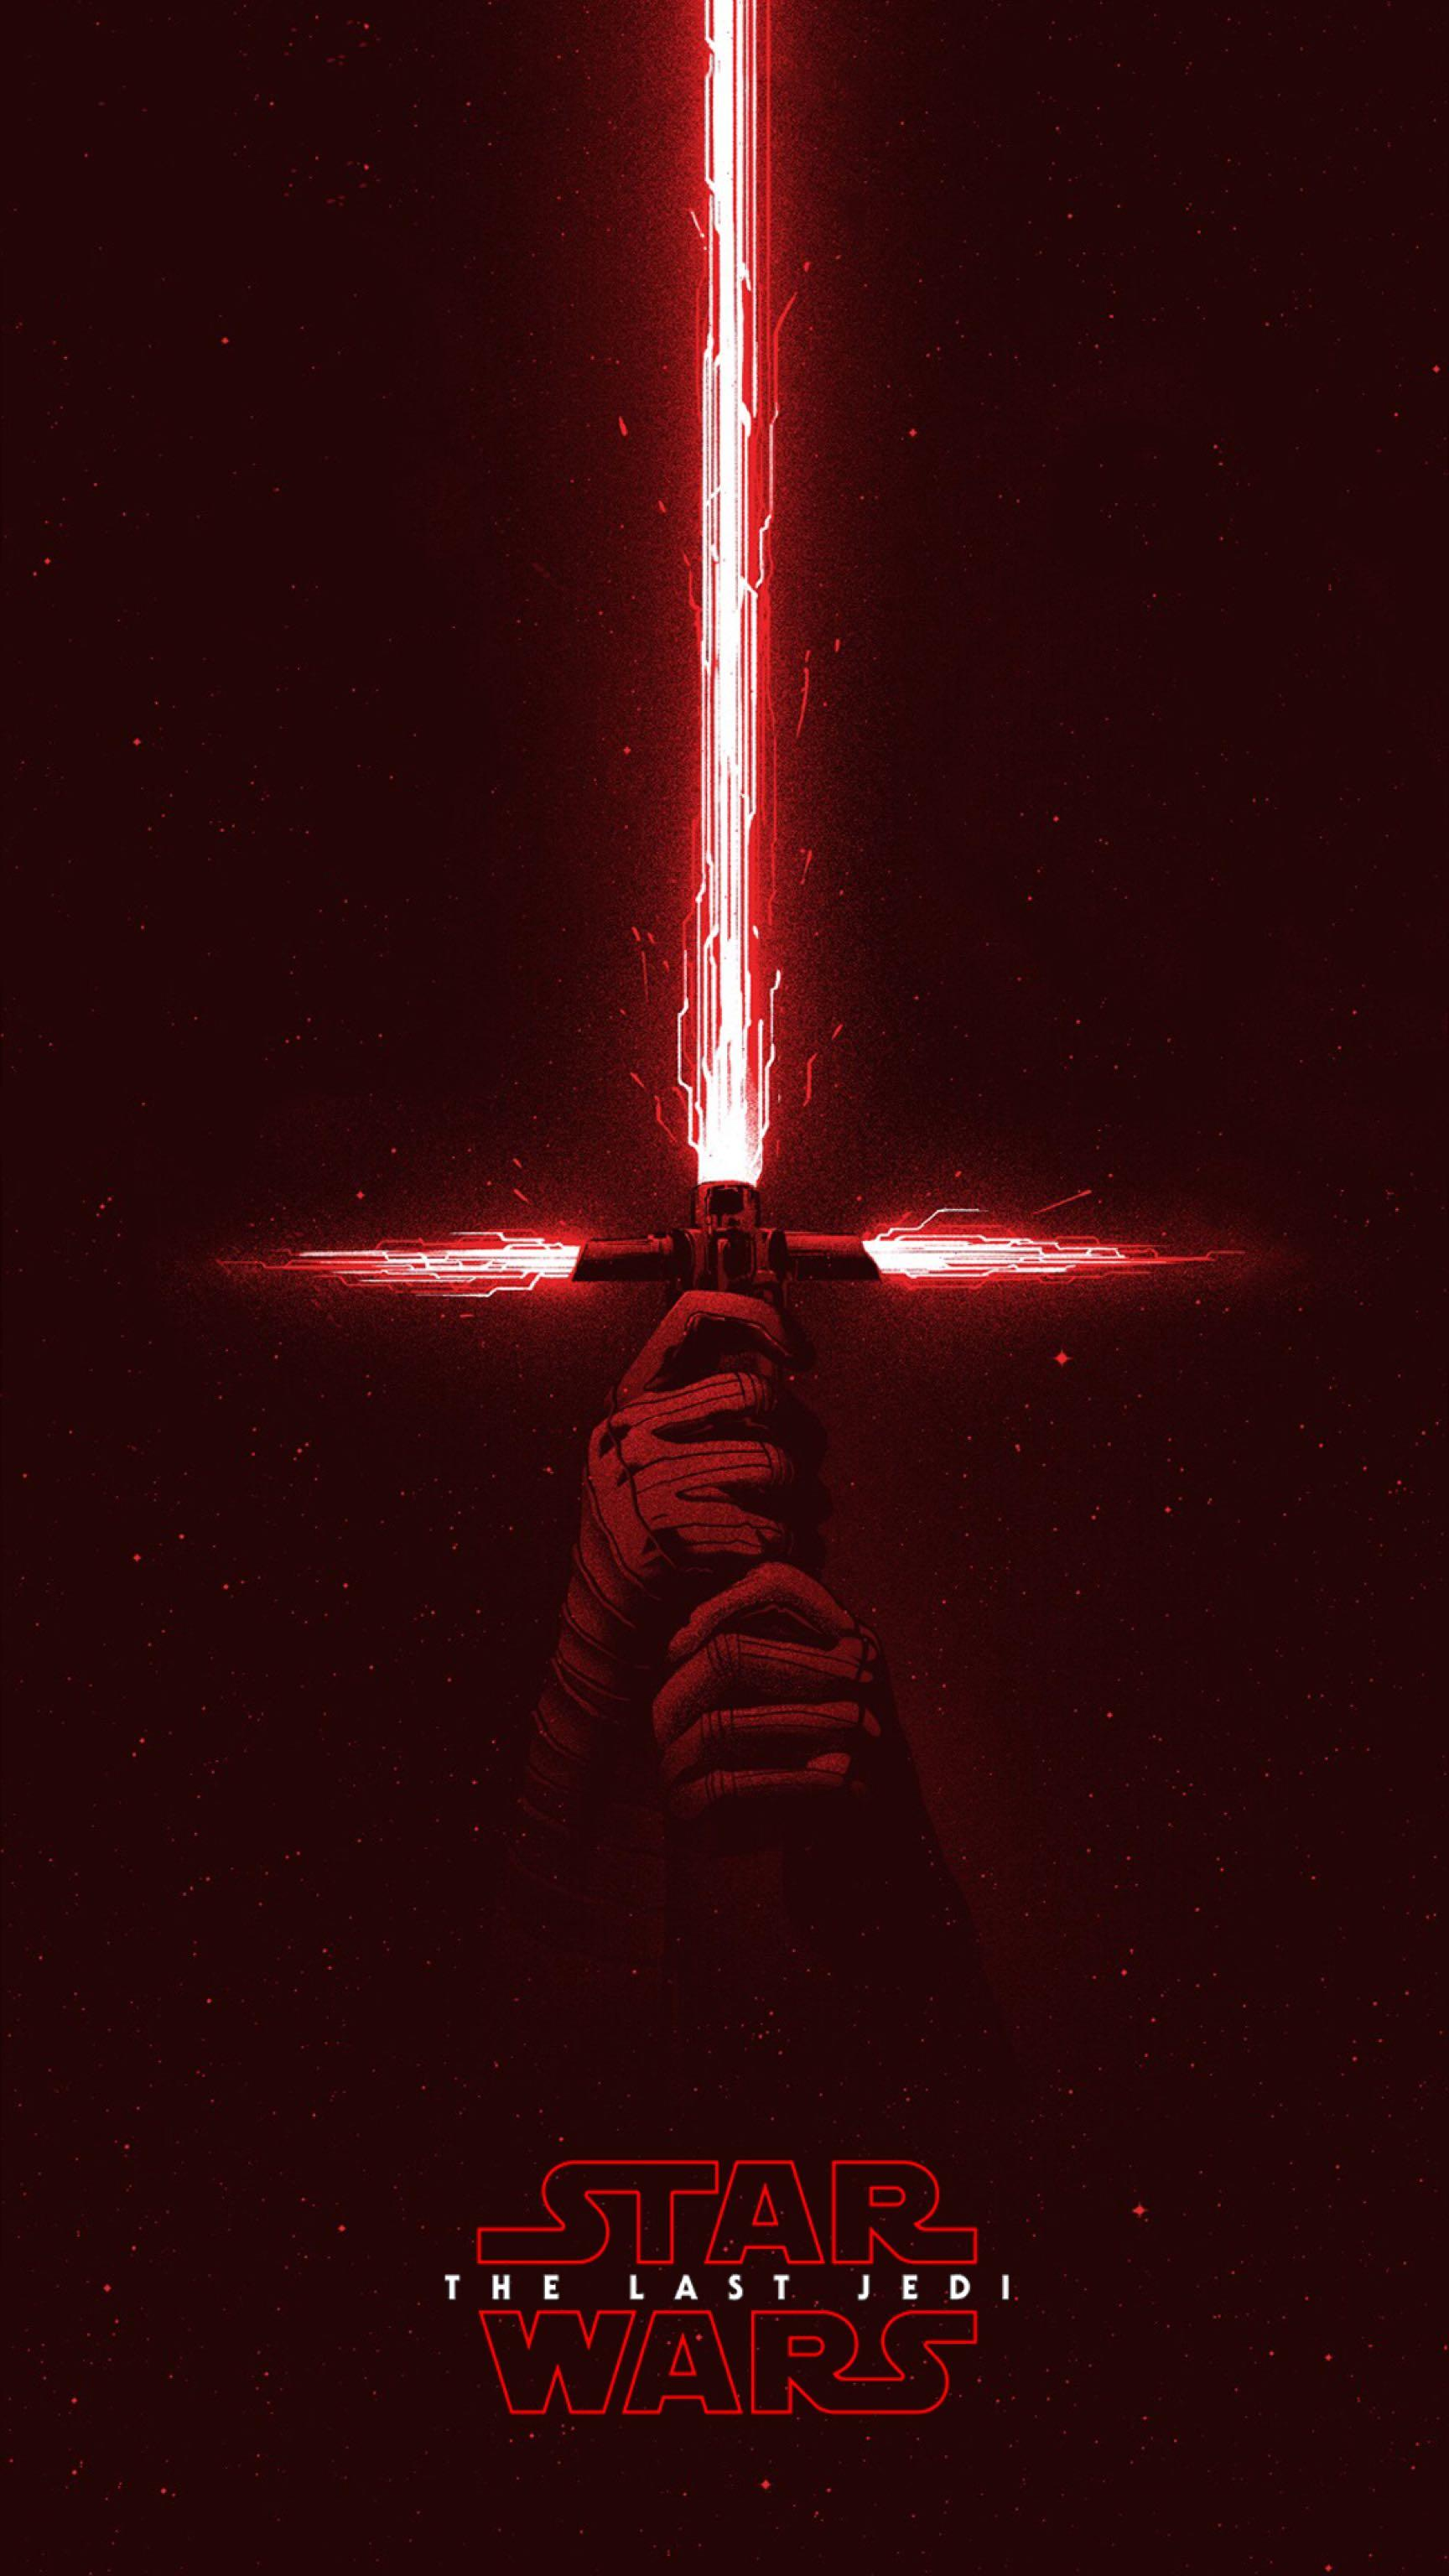 The Last Jedi Wallpapers Wallpaper Cave